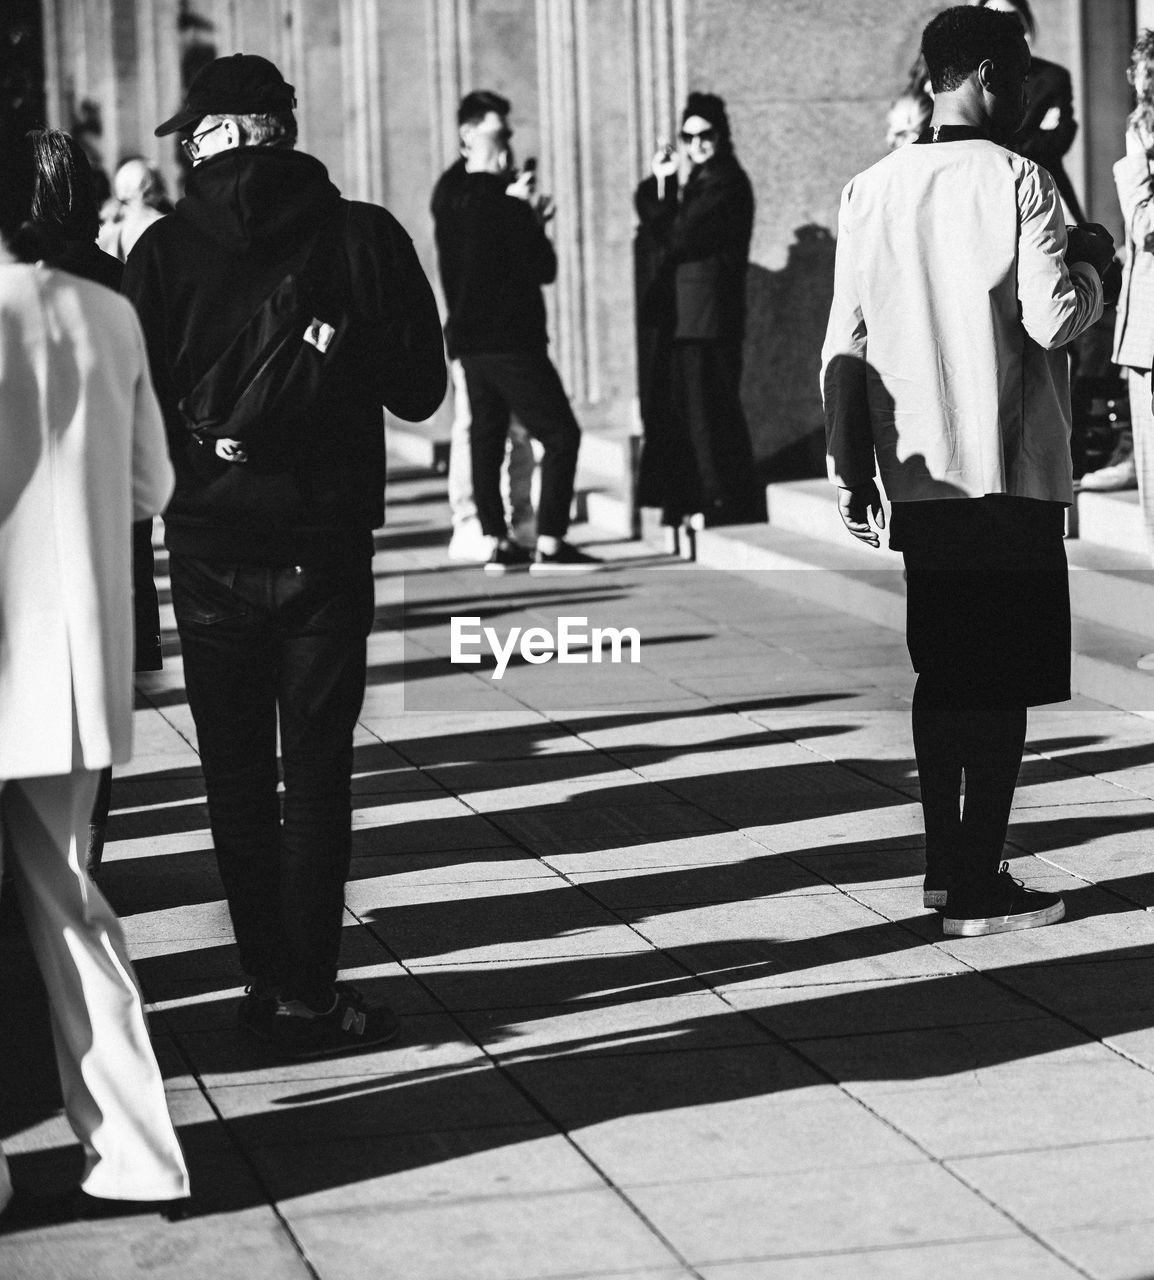 real people, group of people, full length, people, walking, lifestyles, clothing, women, adult, incidental people, men, casual clothing, day, architecture, city, rear view, standing, shadow, footpath, leisure activity